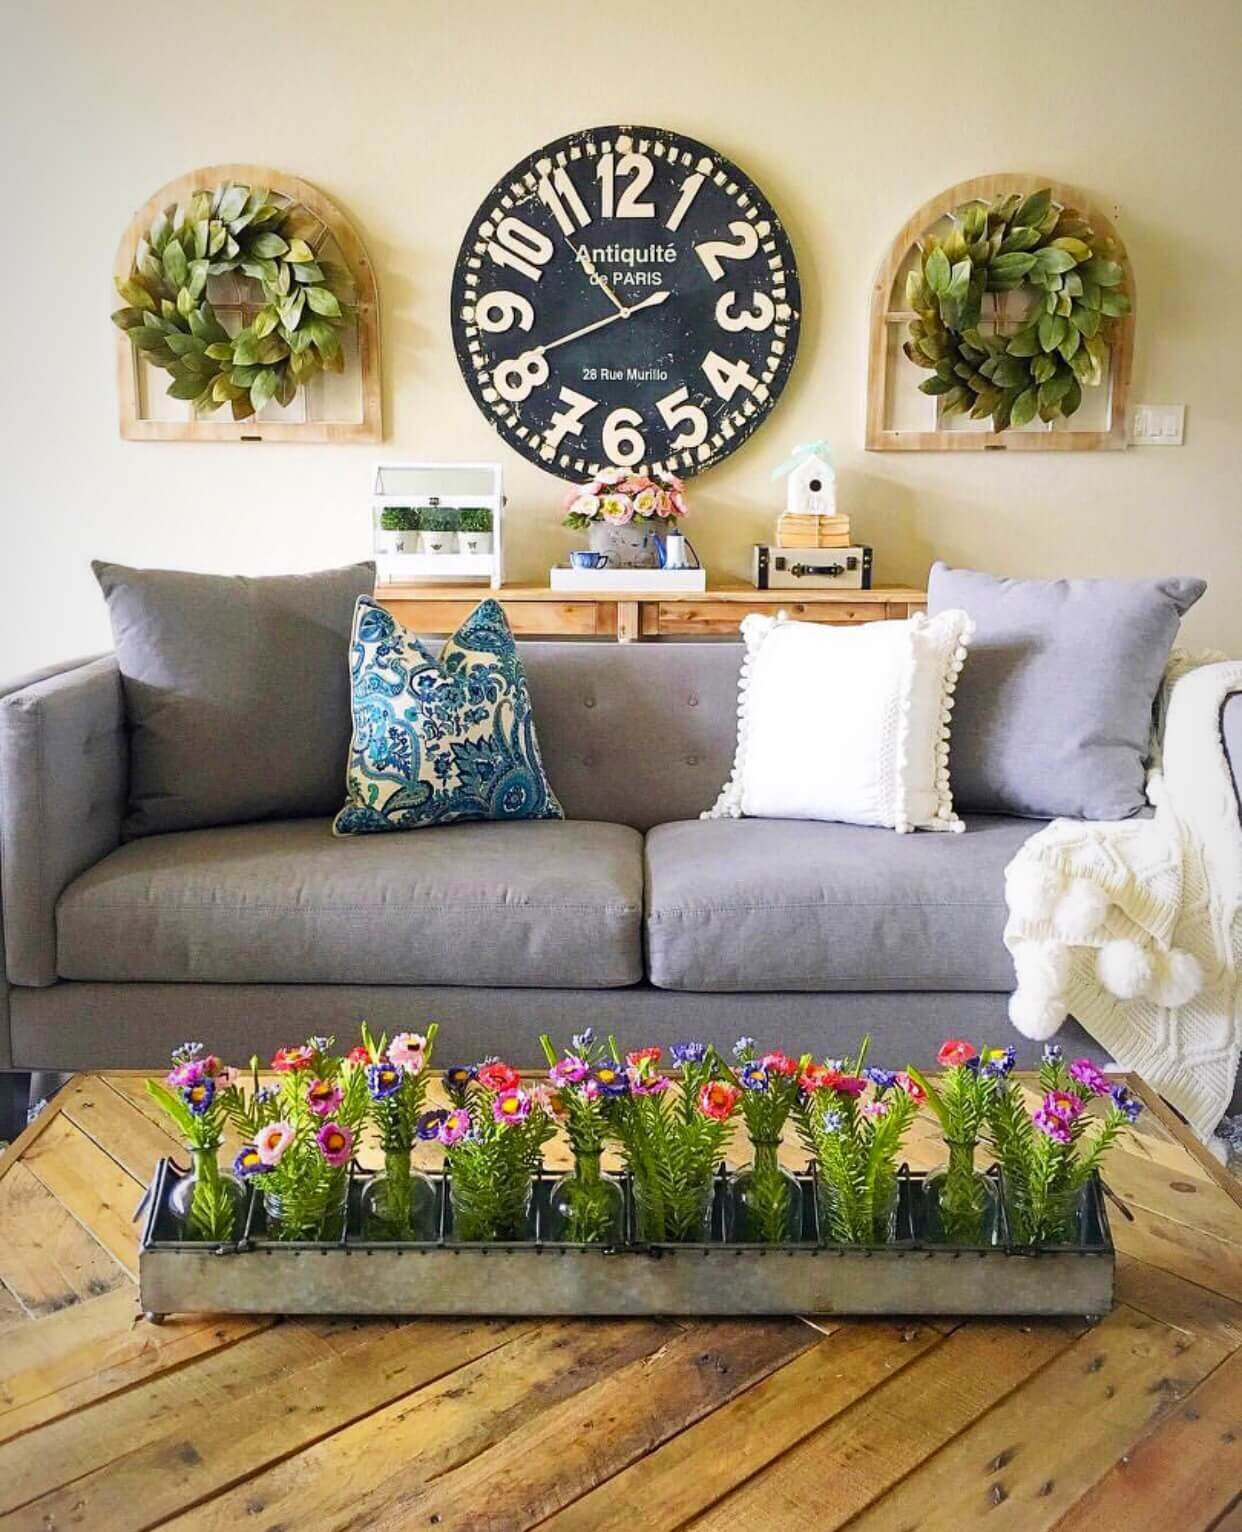 Big Wall Decor Living Room Lovely 33 Best Rustic Living Room Wall Decor Ideas and Designs